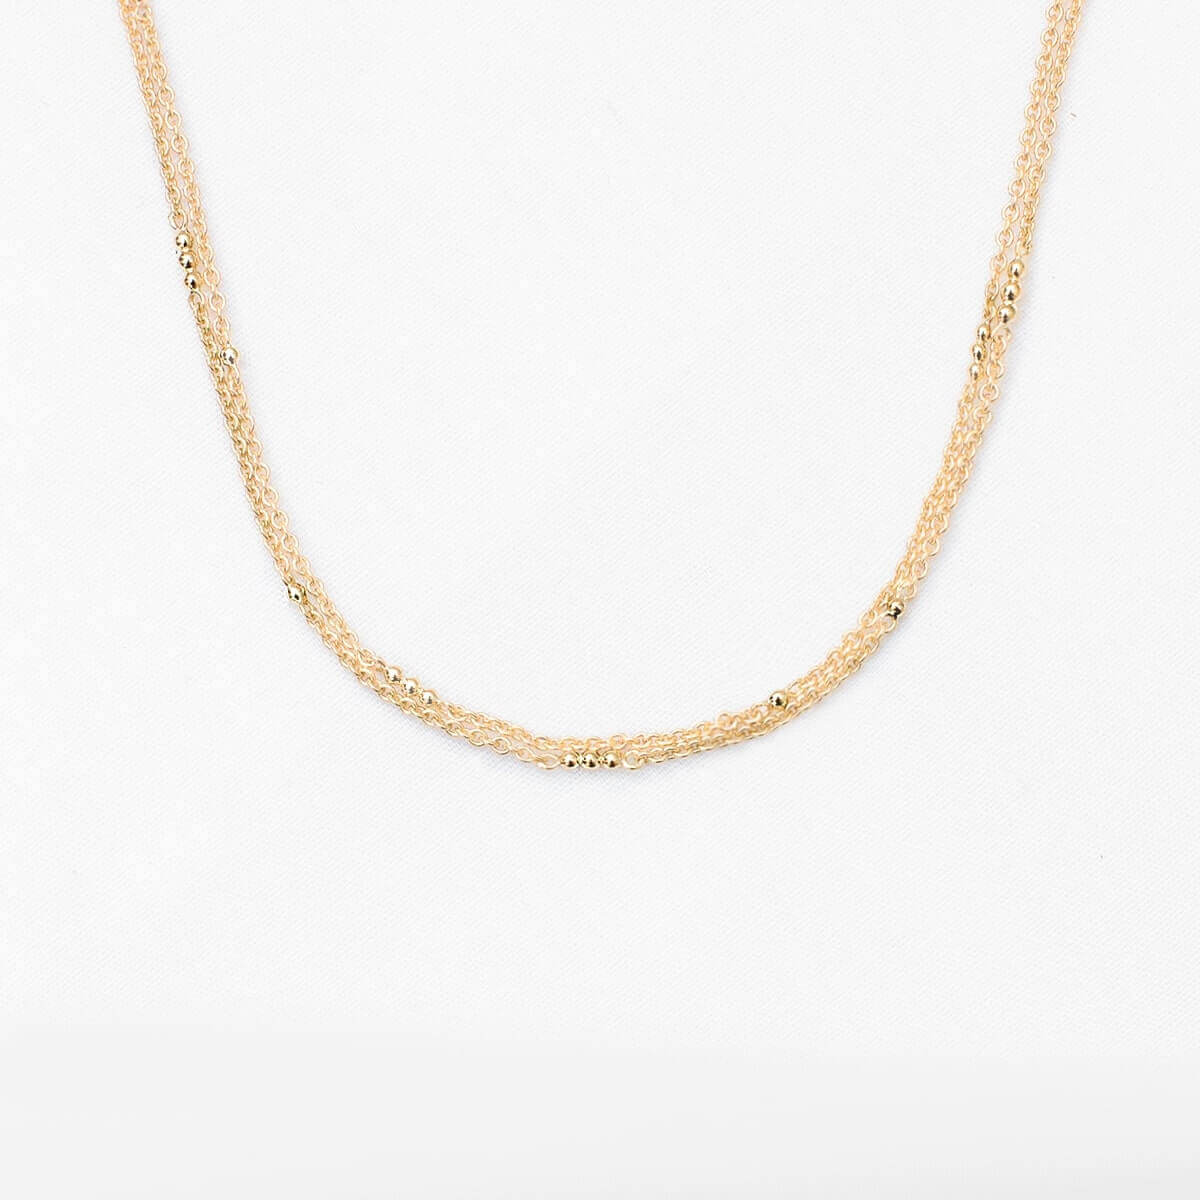 Kaia Beaded Choker